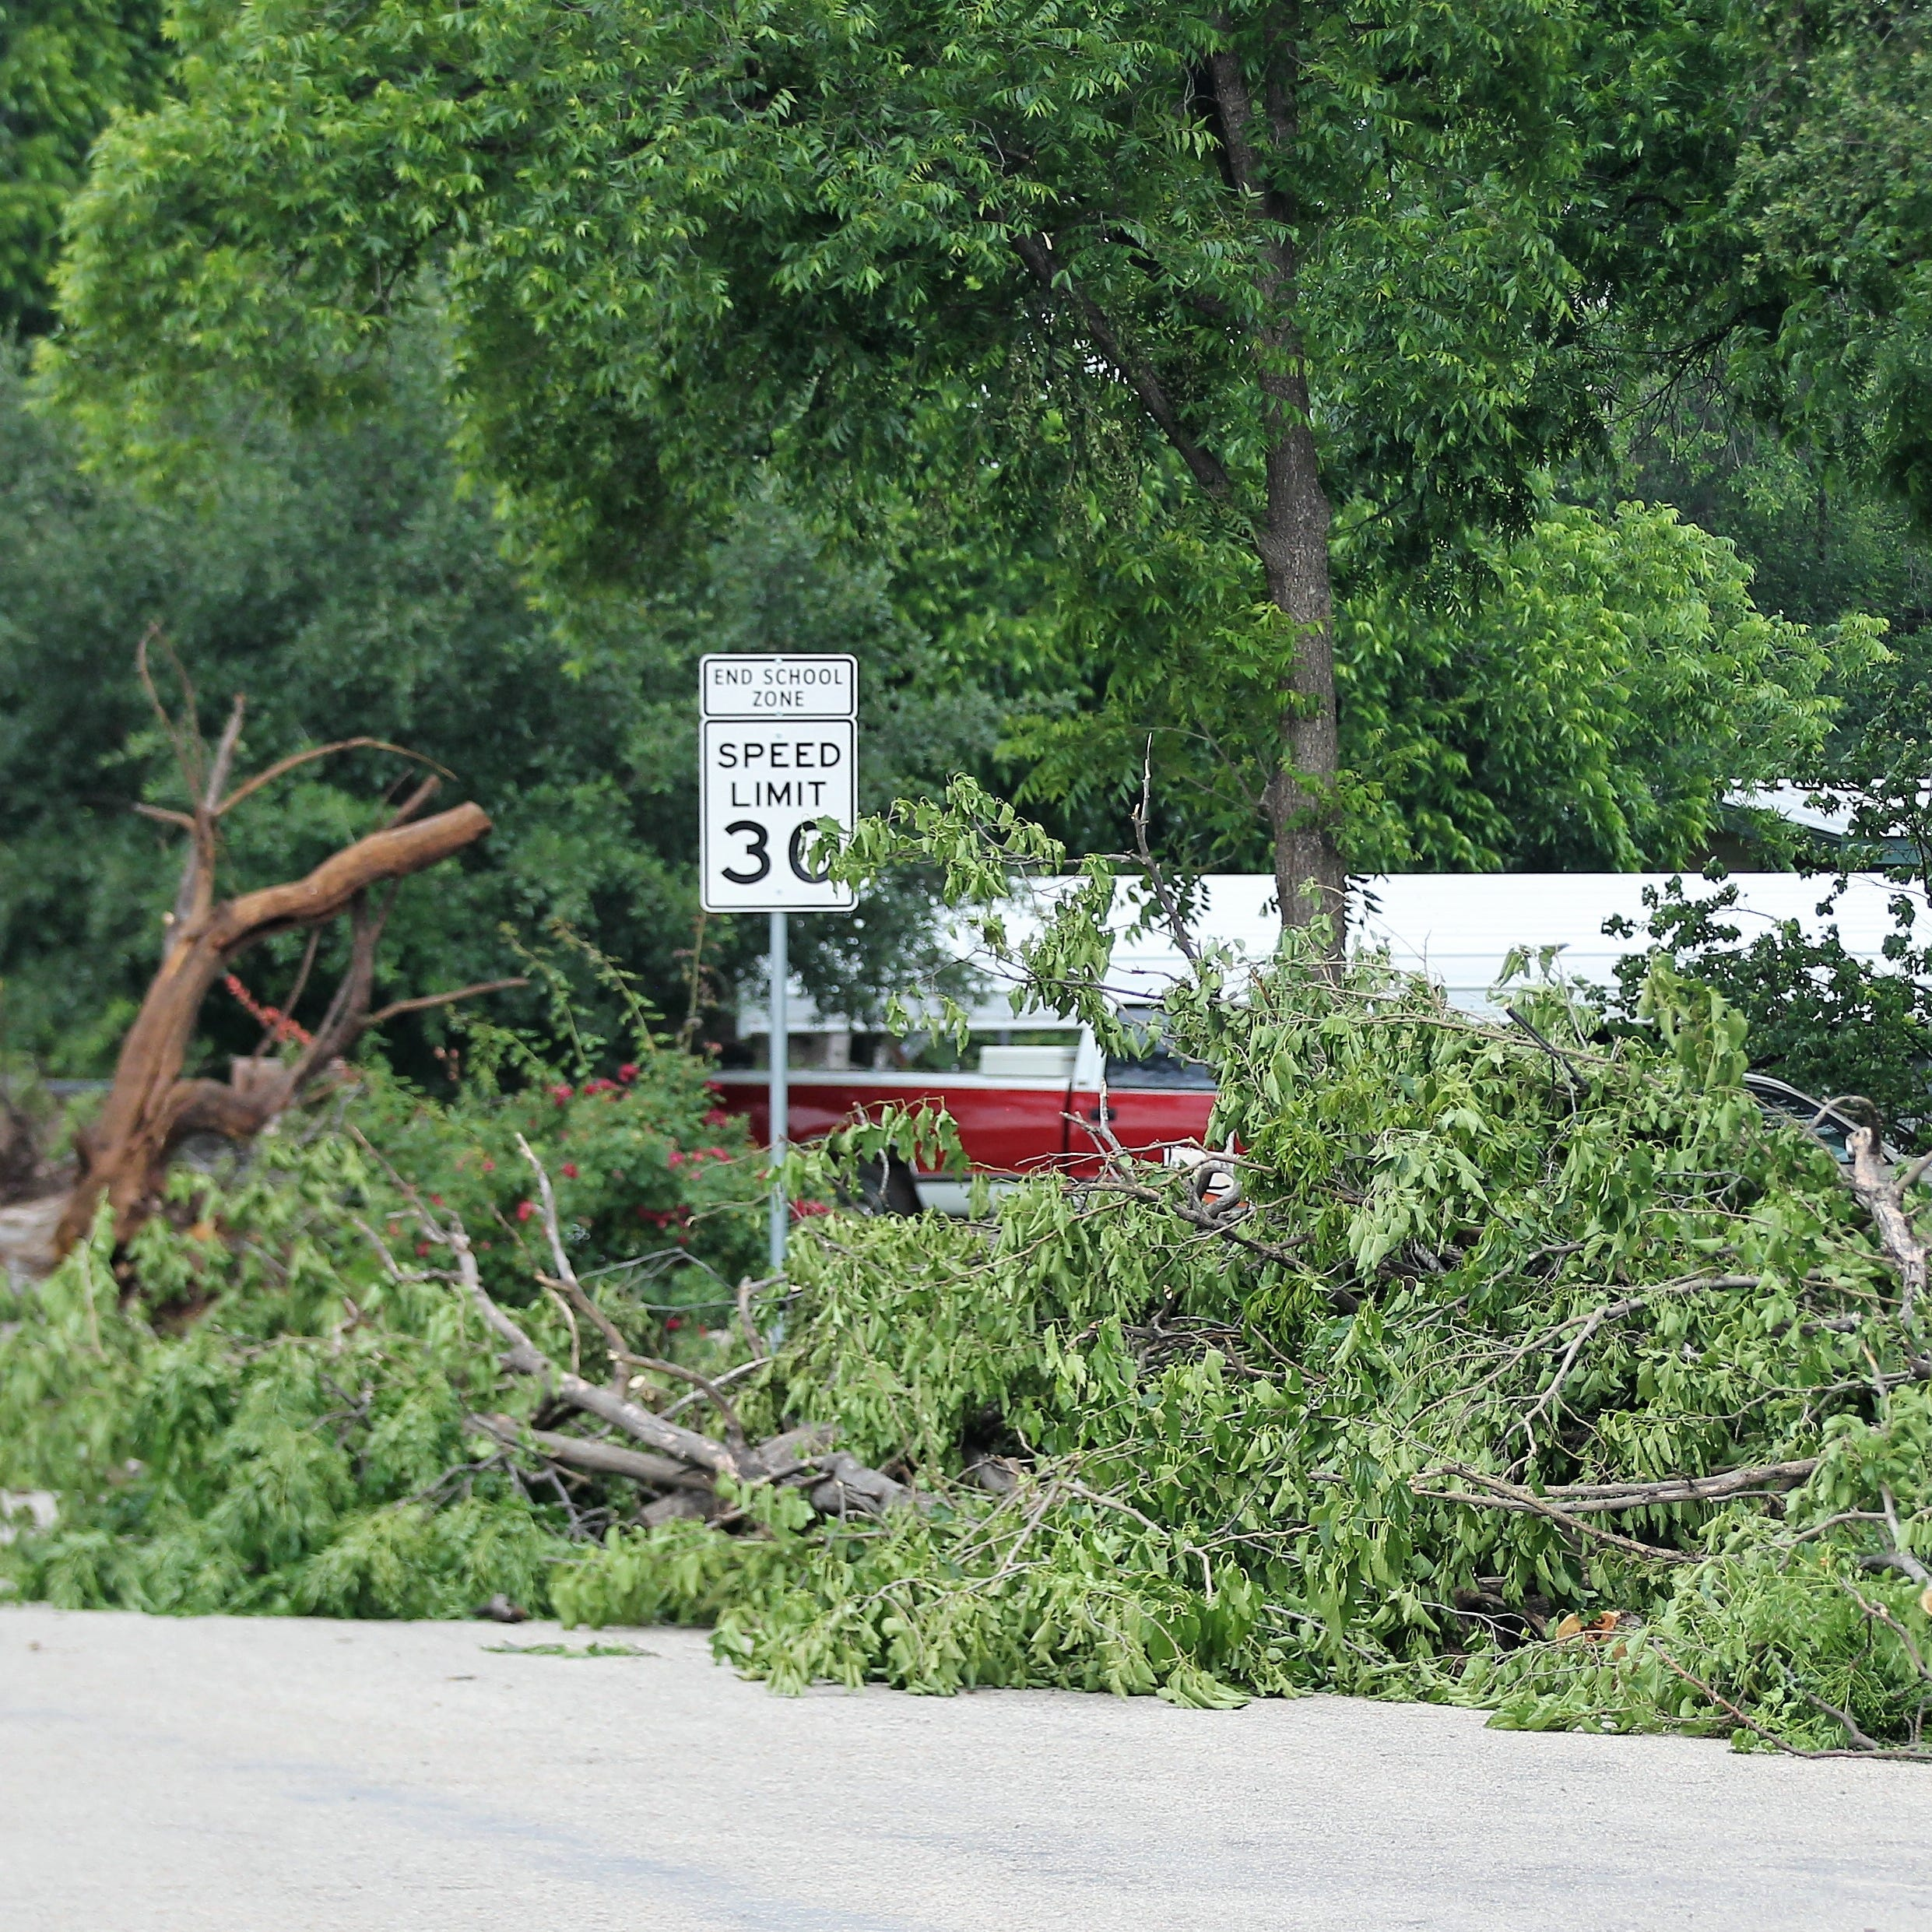 Wondering what to do with storm debris? Here are your options.